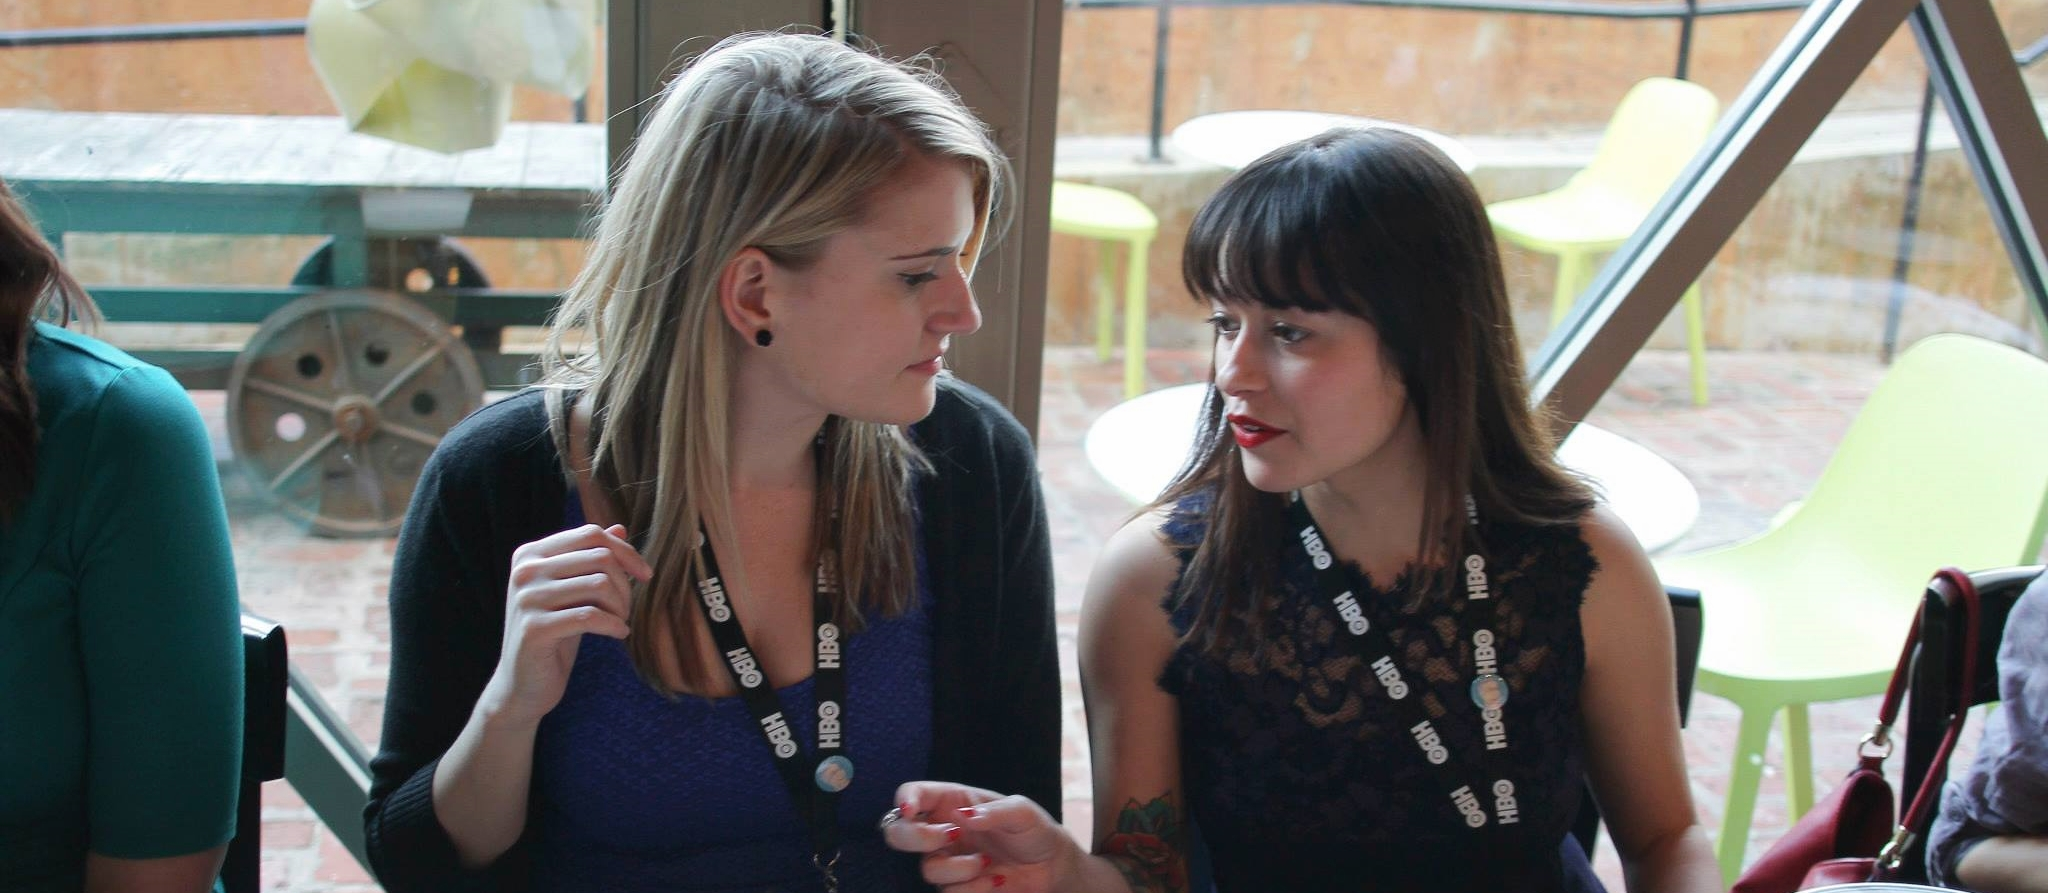 Alyssa Armand (left) and Christina Humphrey (right) have a gravely serious discussion... Probably about Film. Photo: Portraits by Isadora